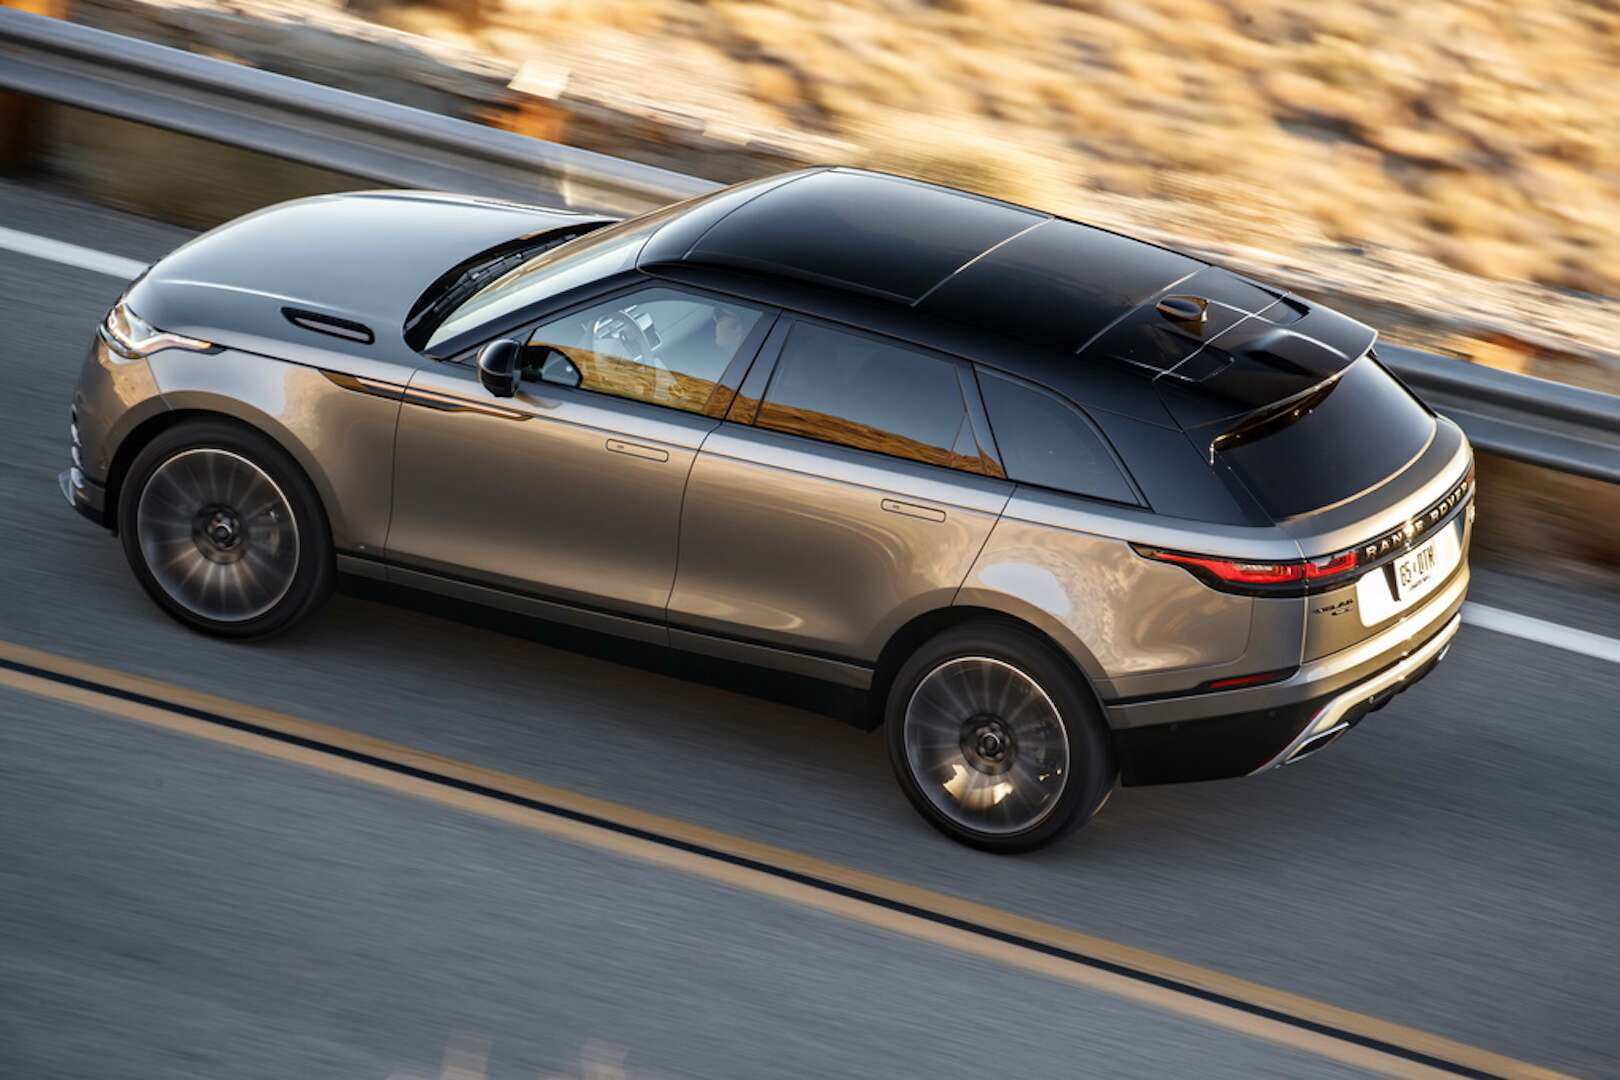 2018 Range Rover Velar Test Drive Review The Ultimate Unisex Luxury